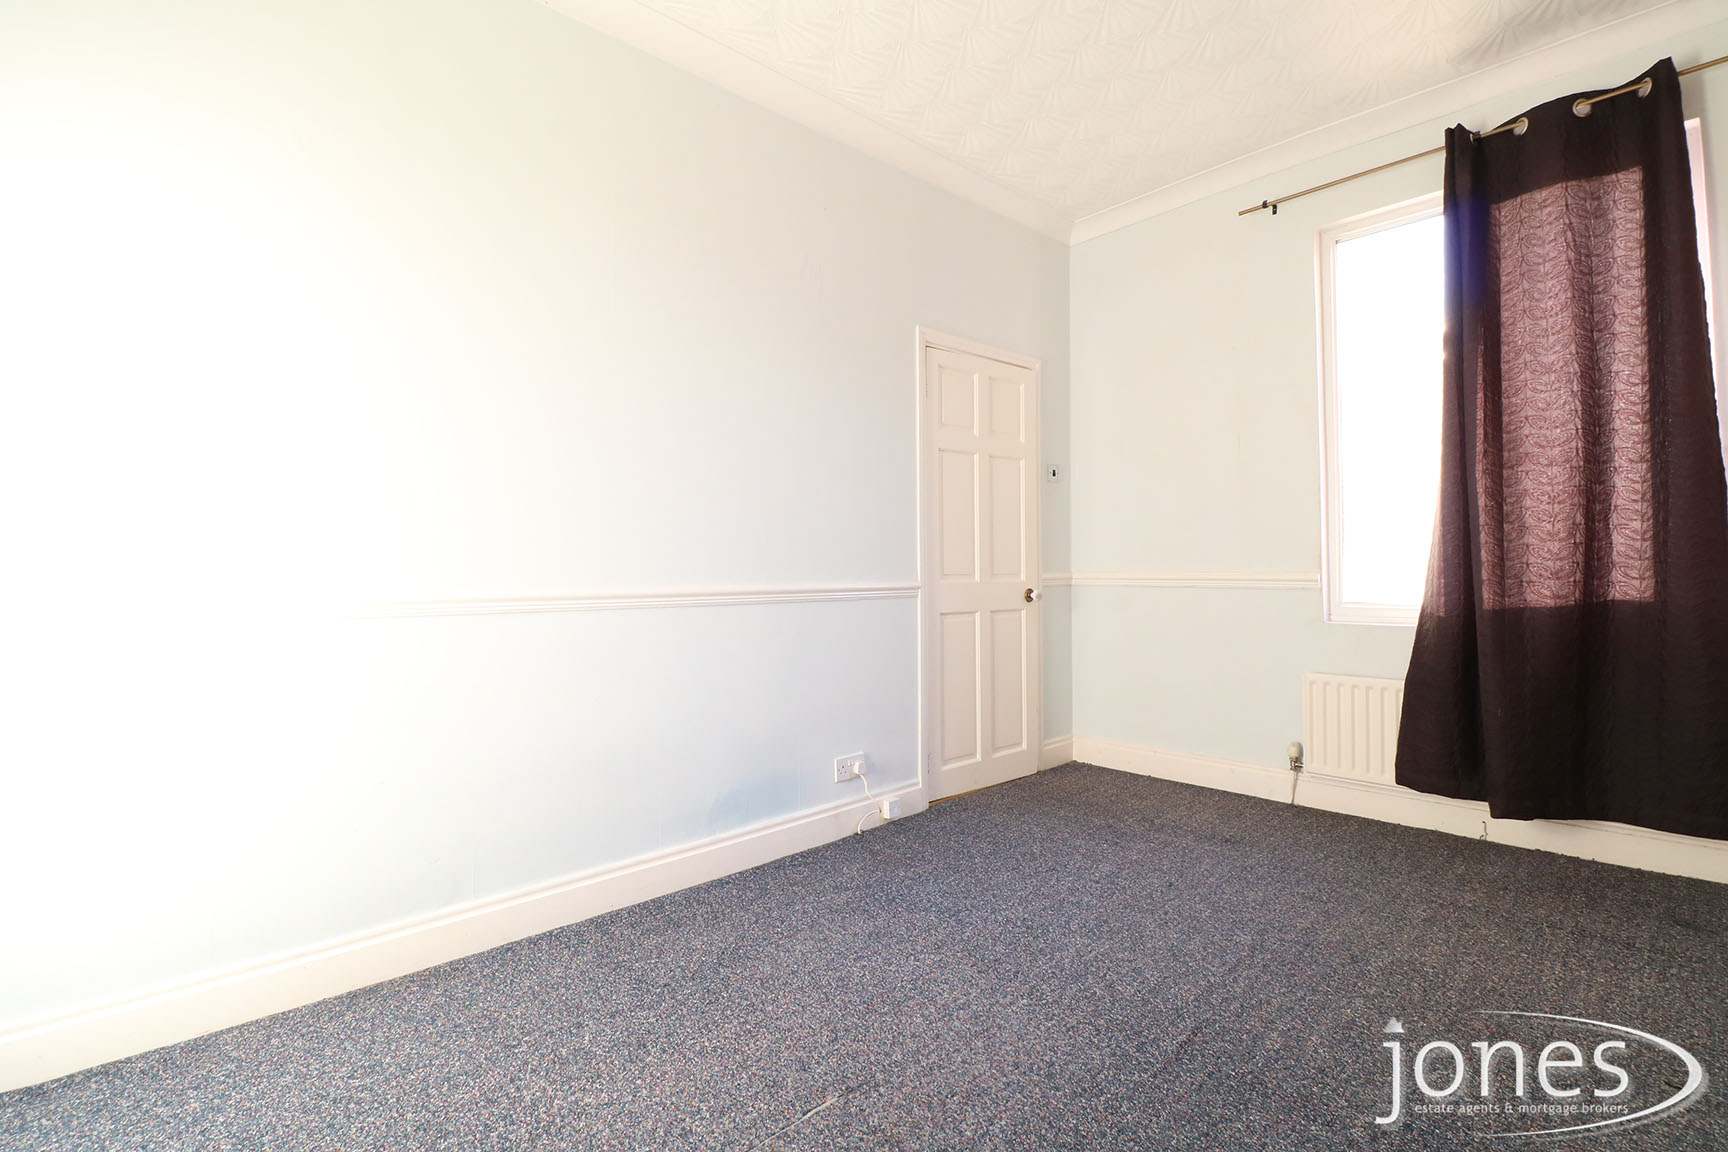 Home for Sale Let - Photo 06 Lambton Road,  Stockton on Tees, TS19 0ER